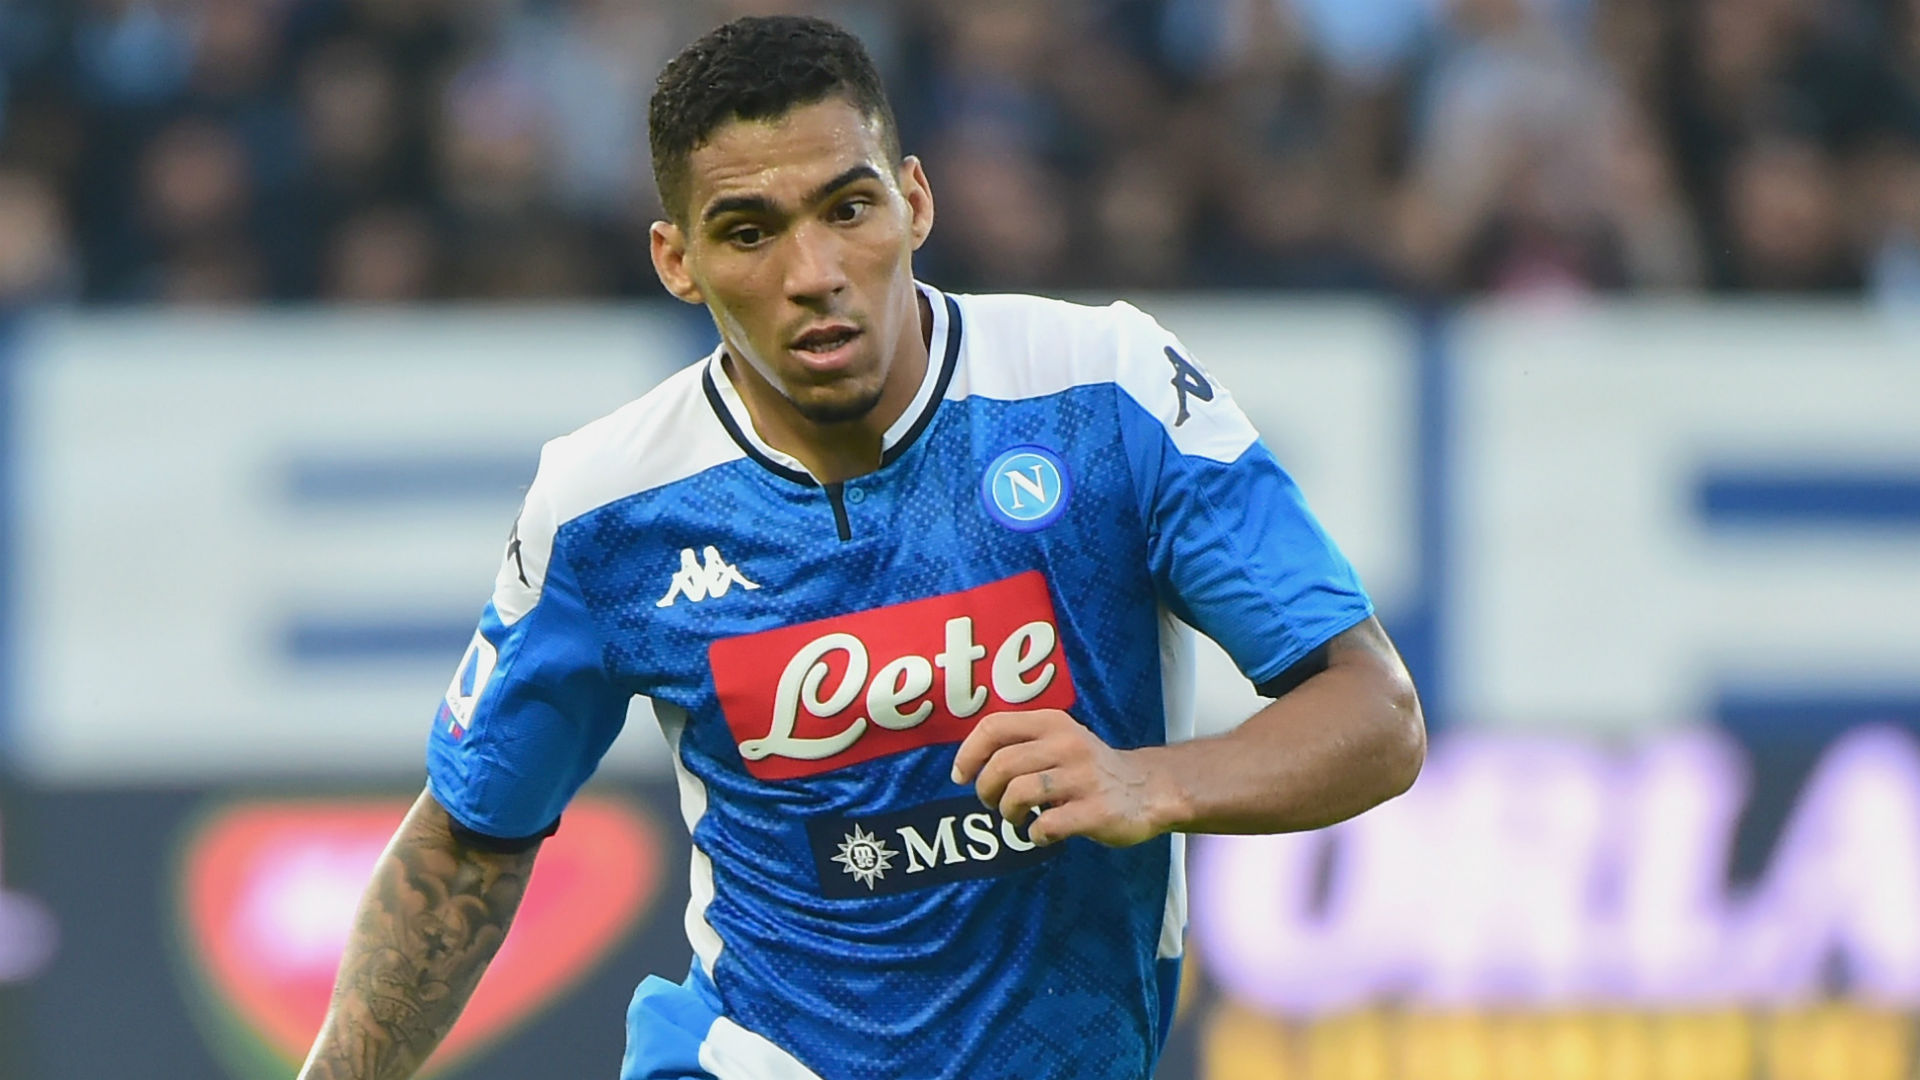 English Premier League (EPL) clubside Everton on Saturday said they have signed Brazil midfielder Allan from Italian side Napoli on a three-year deal. Financial details of the deal were not disclosed, but British media reported Everton had paid a fee of around 25 million pounds to Napoli for the 29-year-old. Allan scored 11 goals and […]